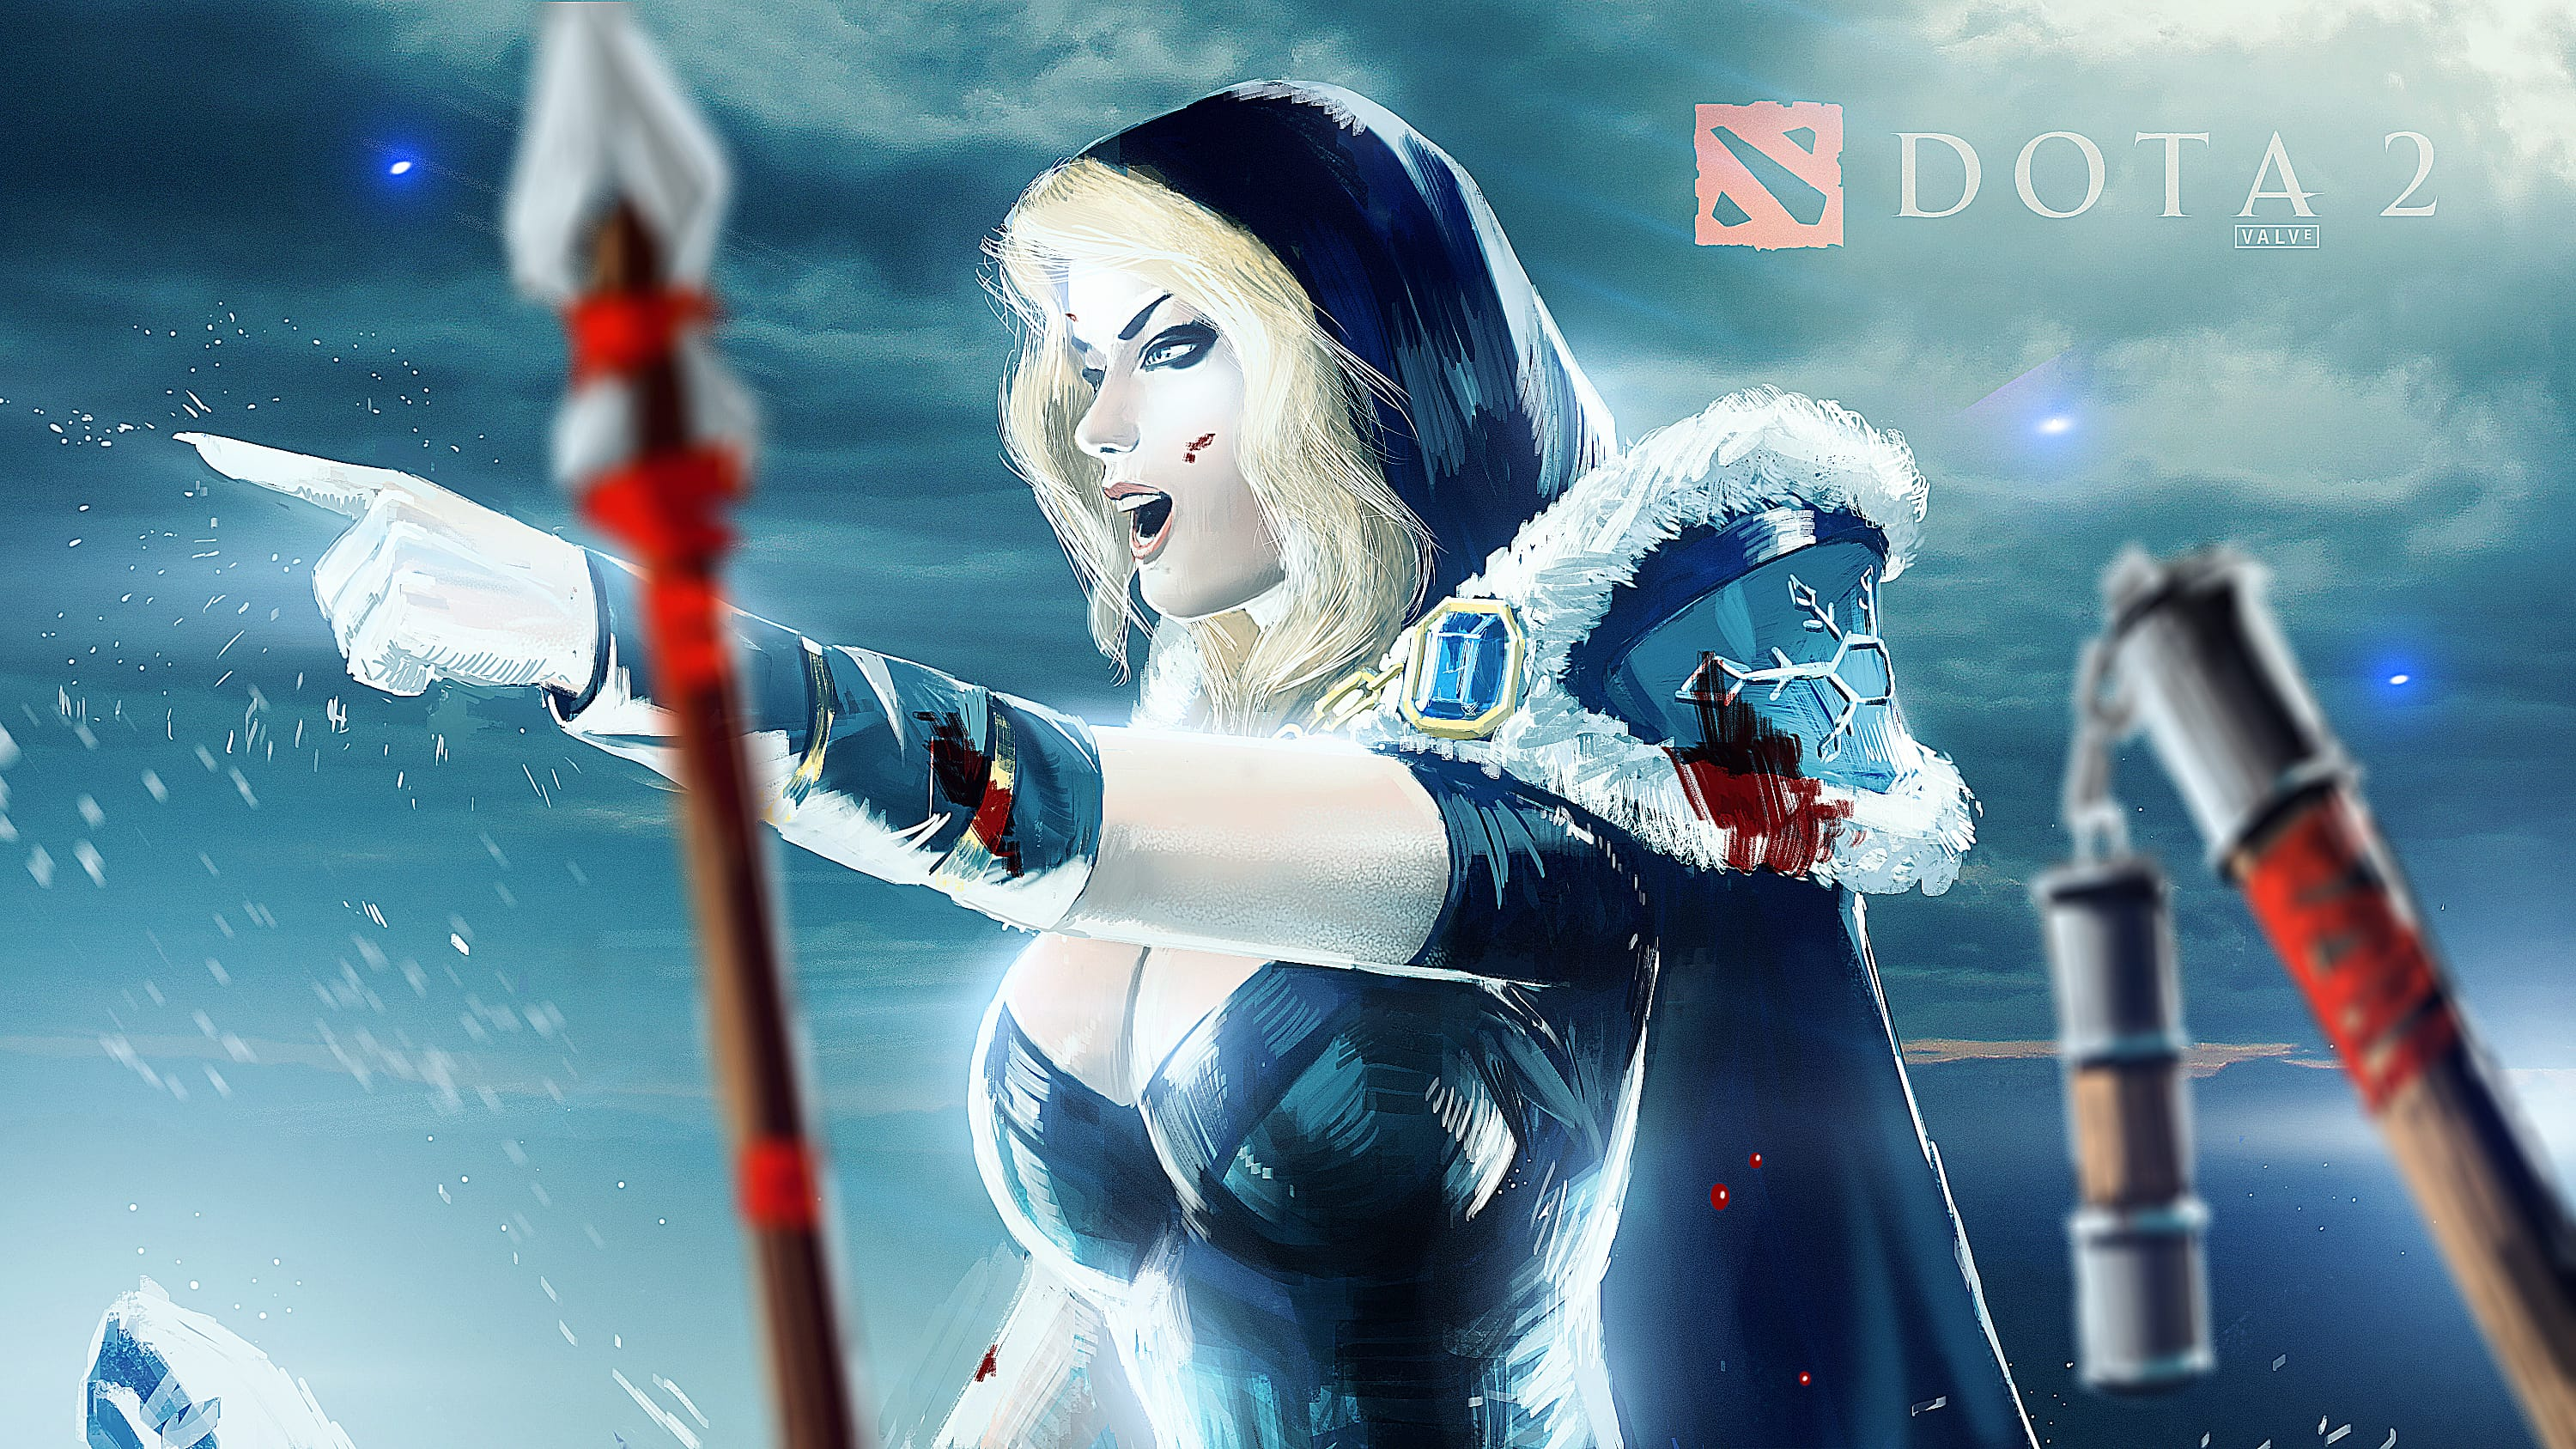 Dota2 : Crystal Maiden desktop wallpaper